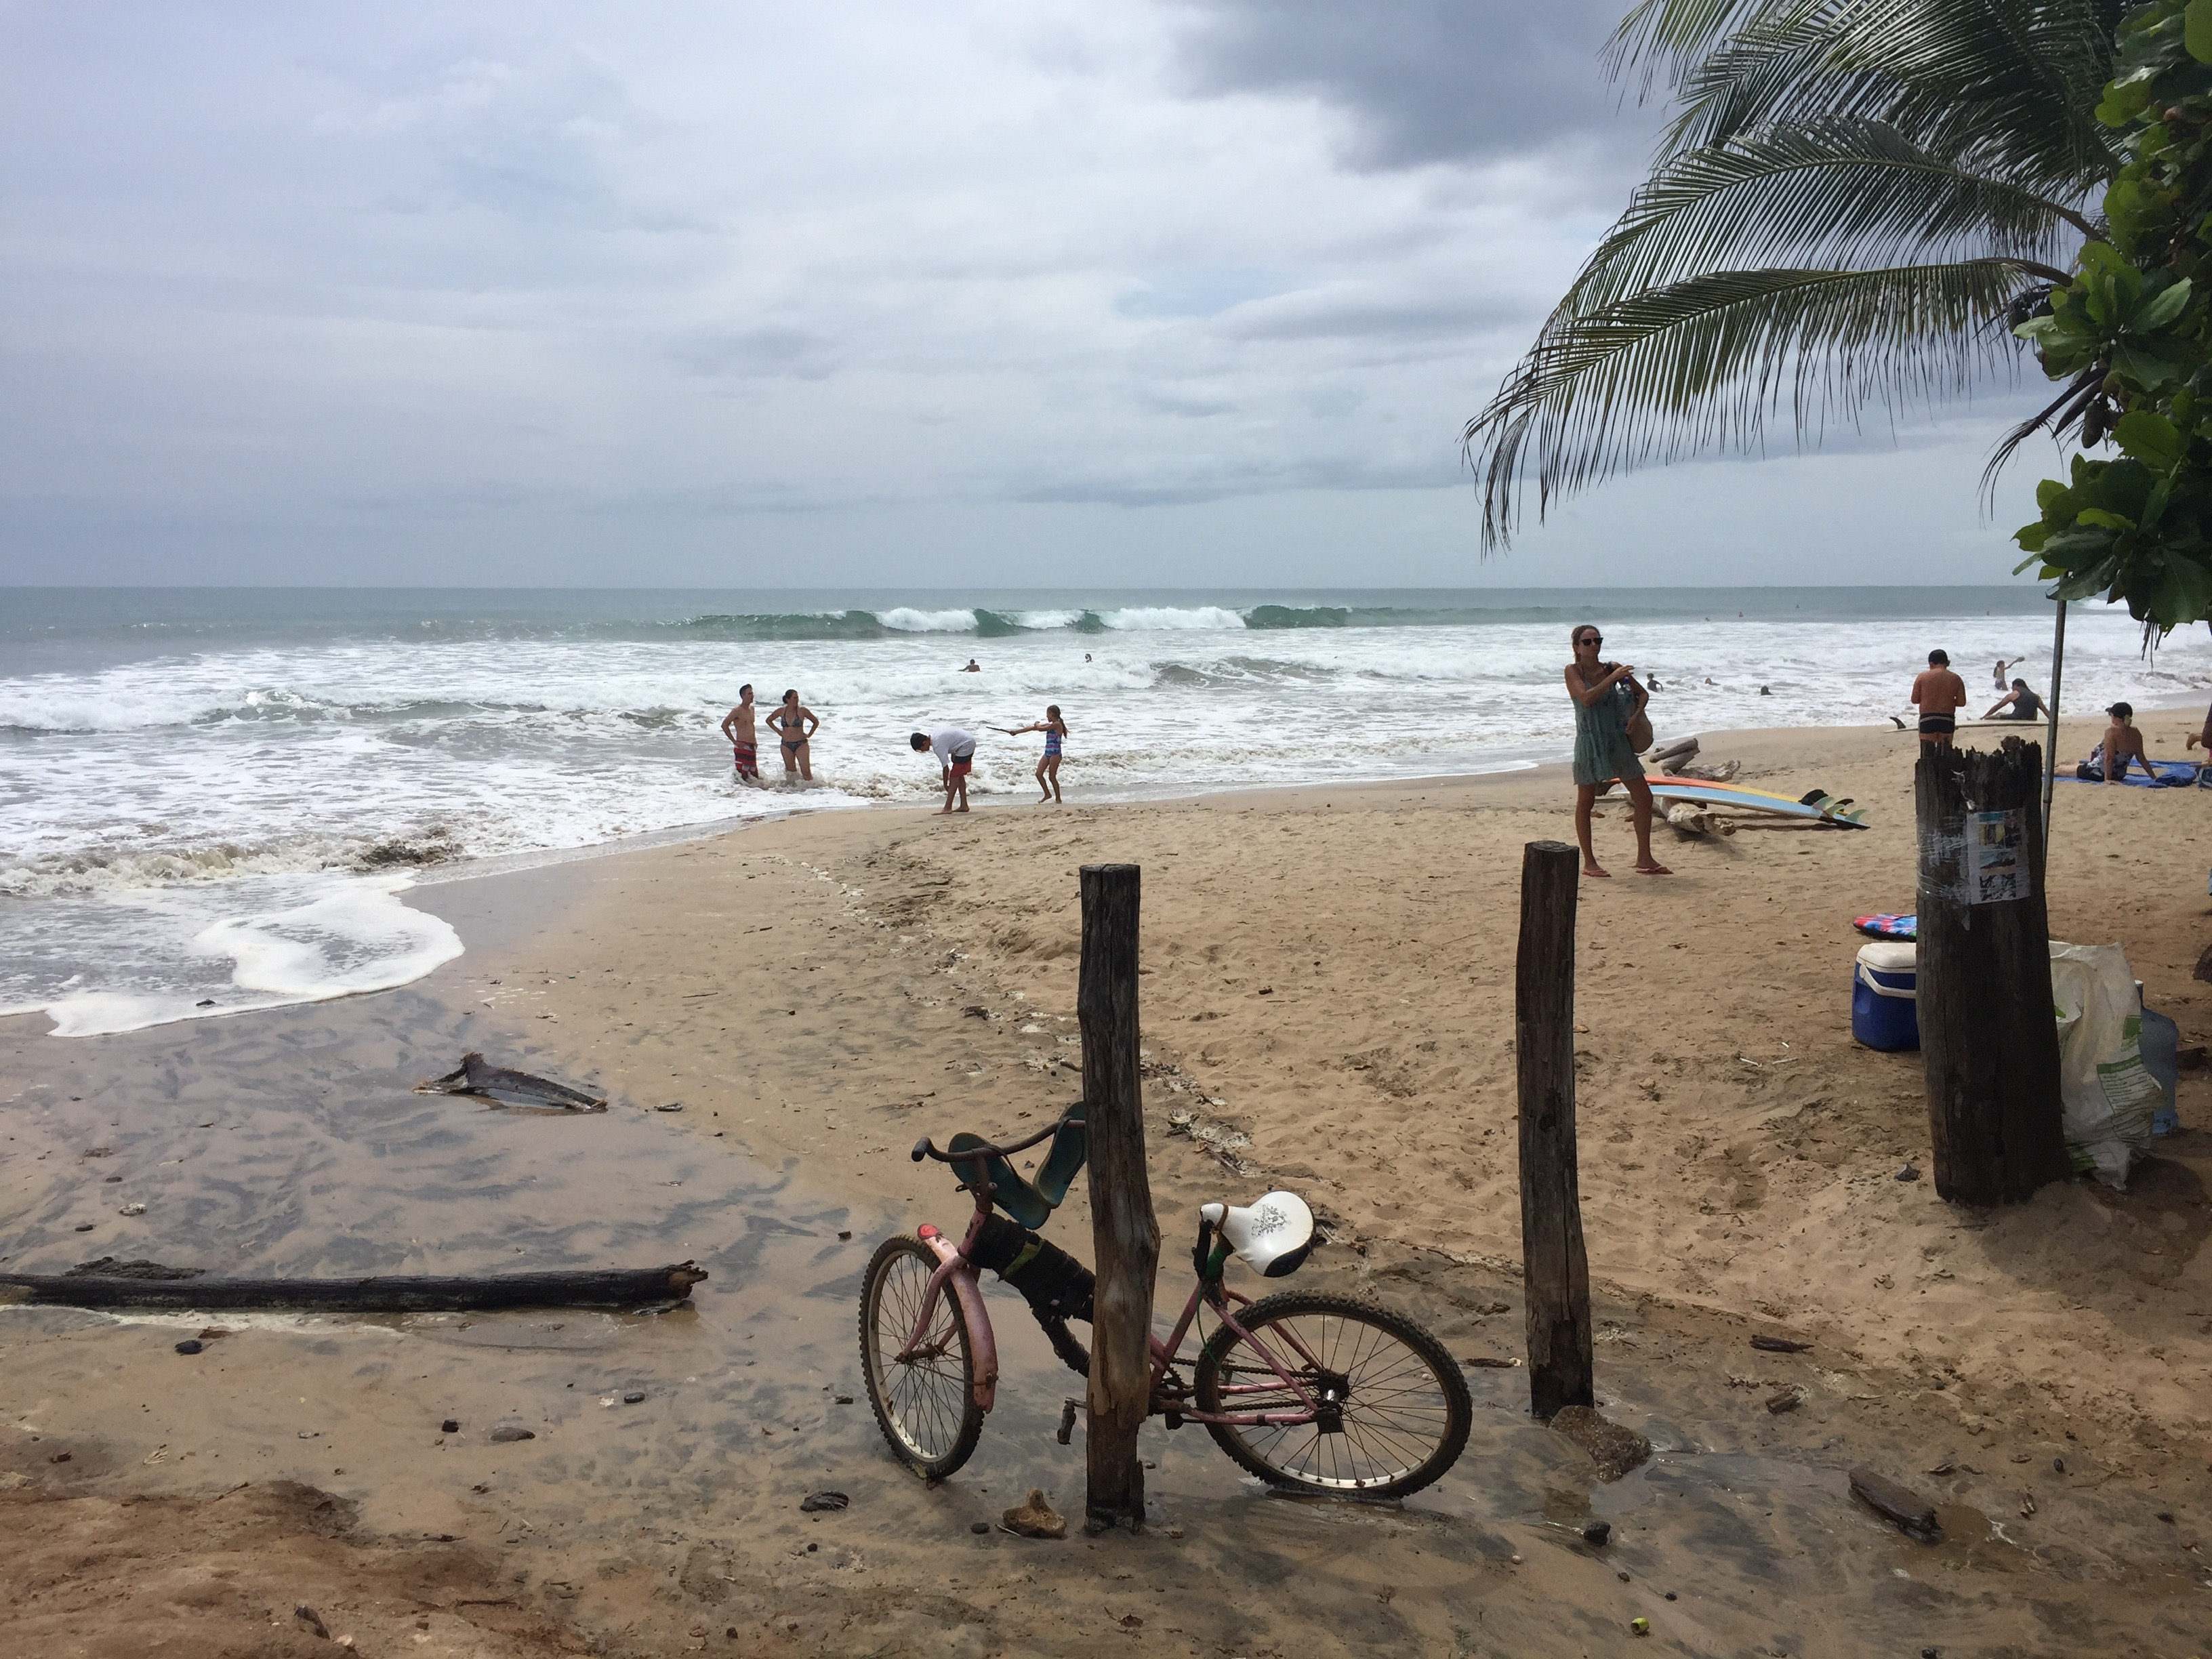 A bike rests on a wood pole at PLaya Avellanas in Costa Rica.